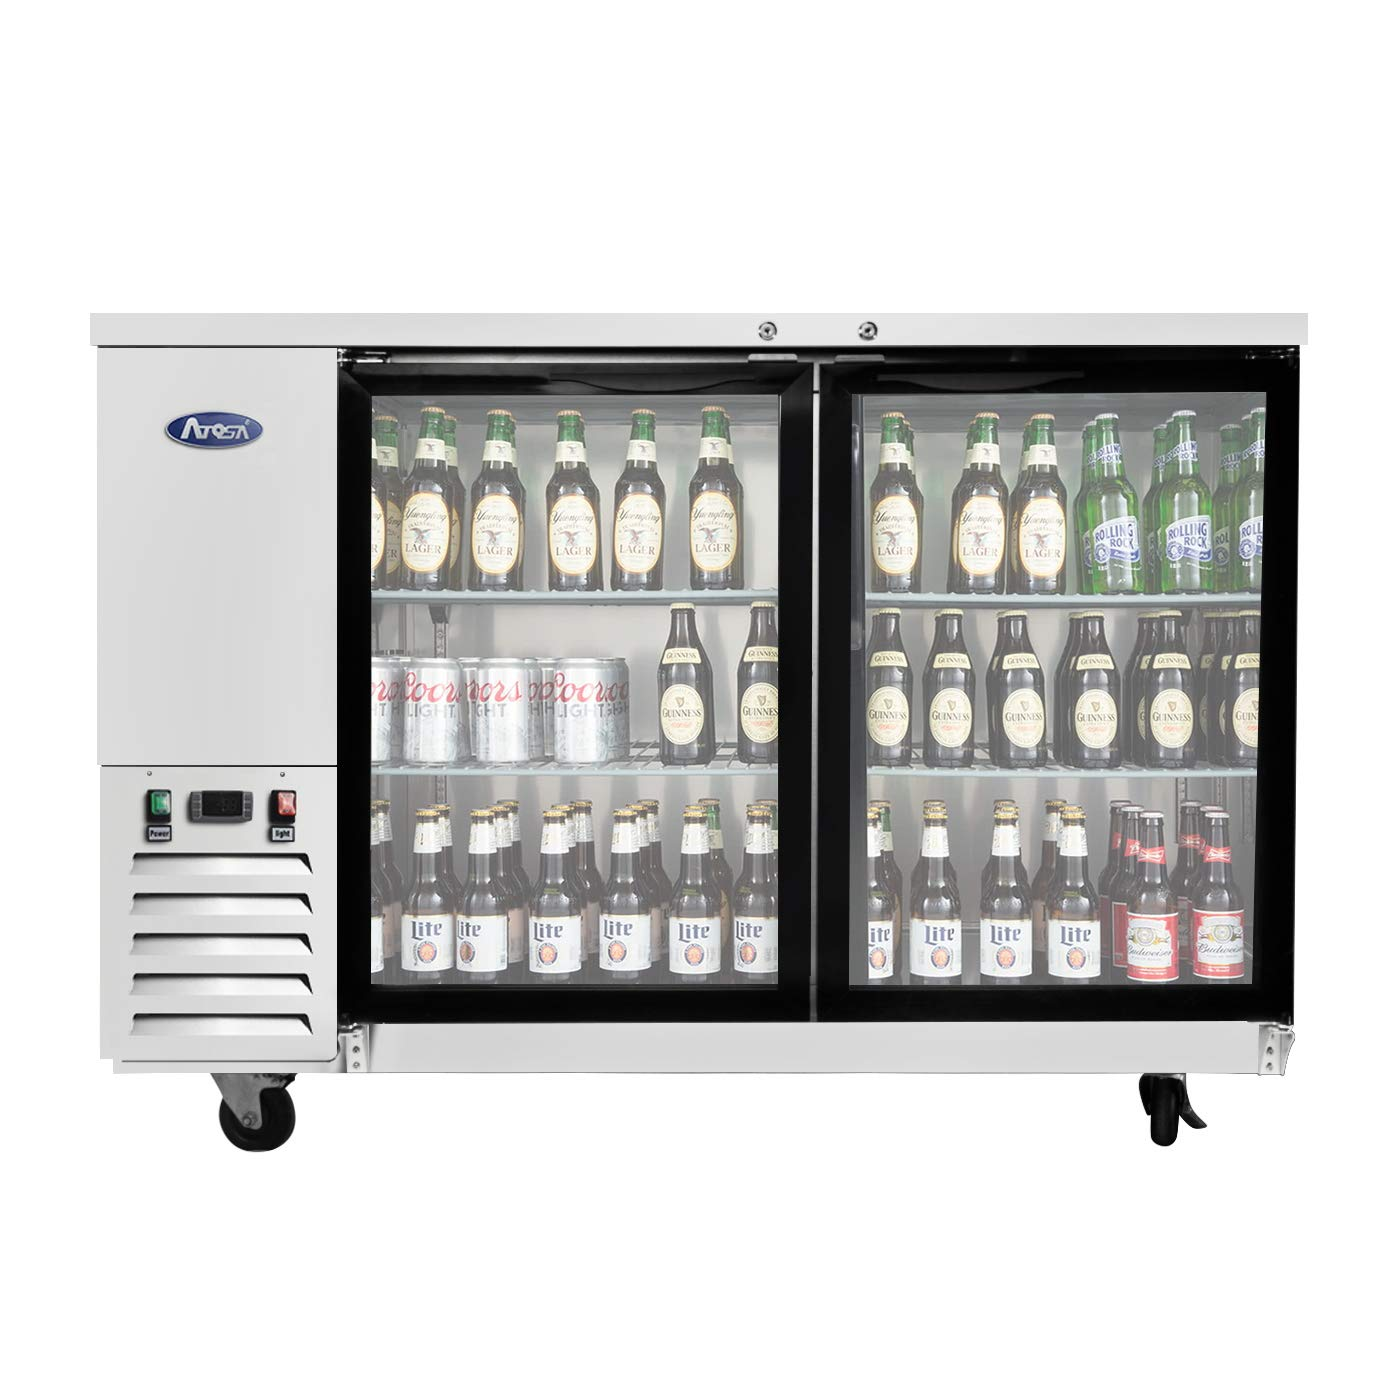 Counter Height Refrigerator, ATOSA Beverage Refrigerators with 2 Glass Door, 17.3 Cu.Ft. MBB59G